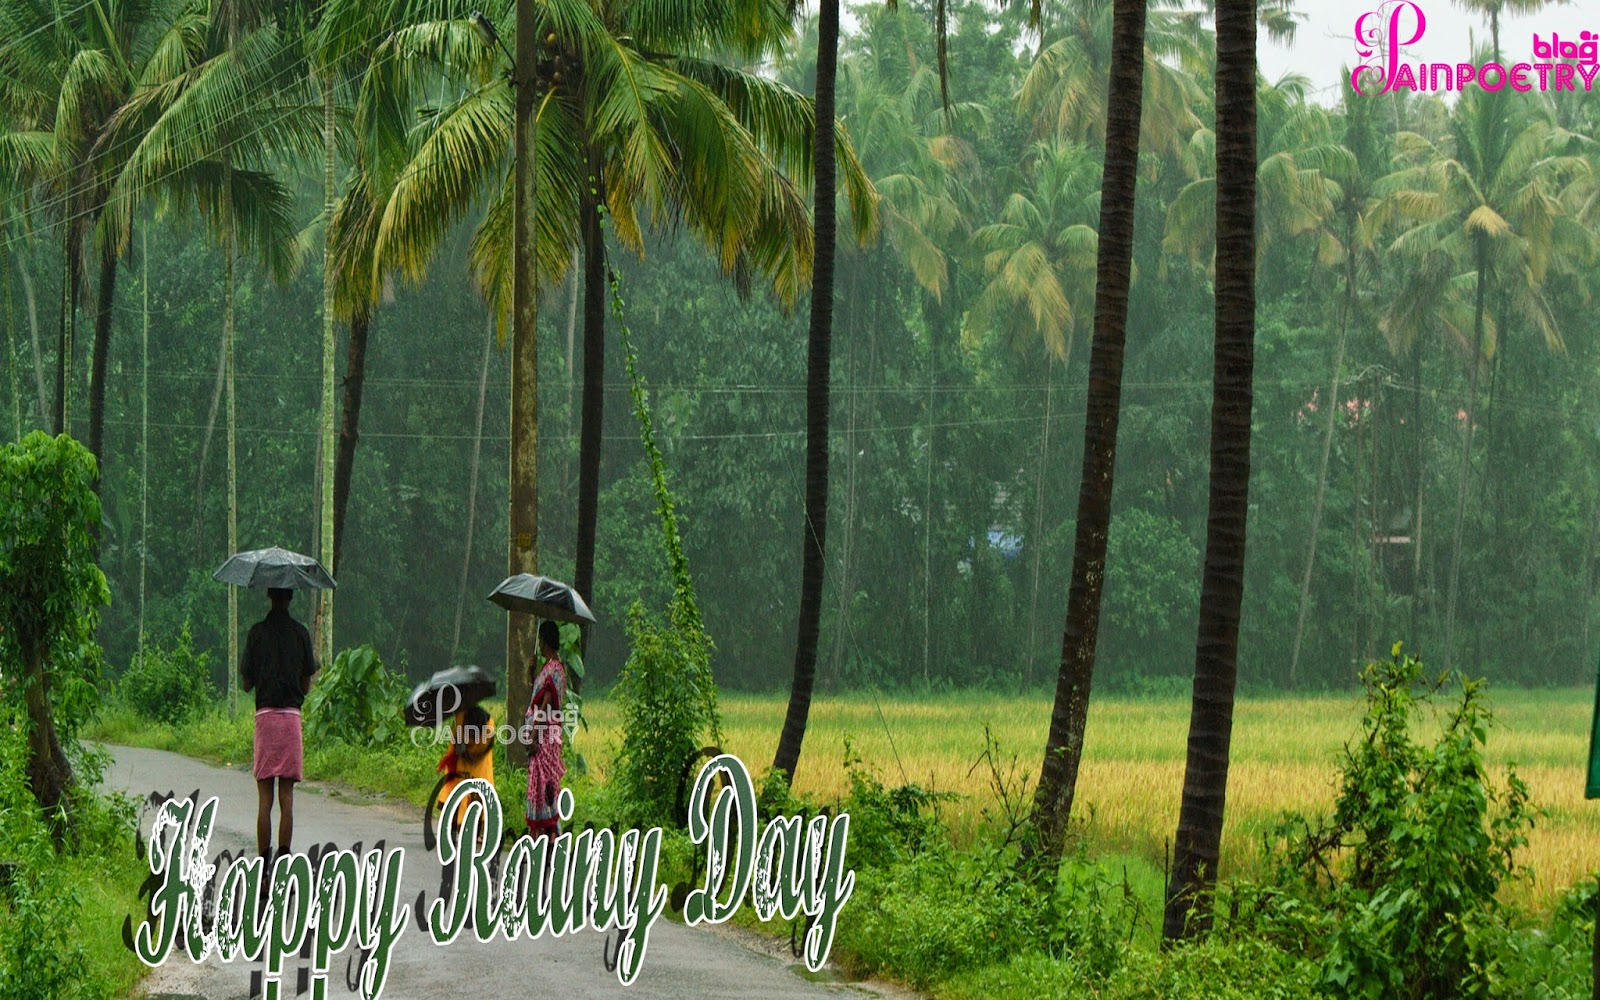 rainy day hd images free download